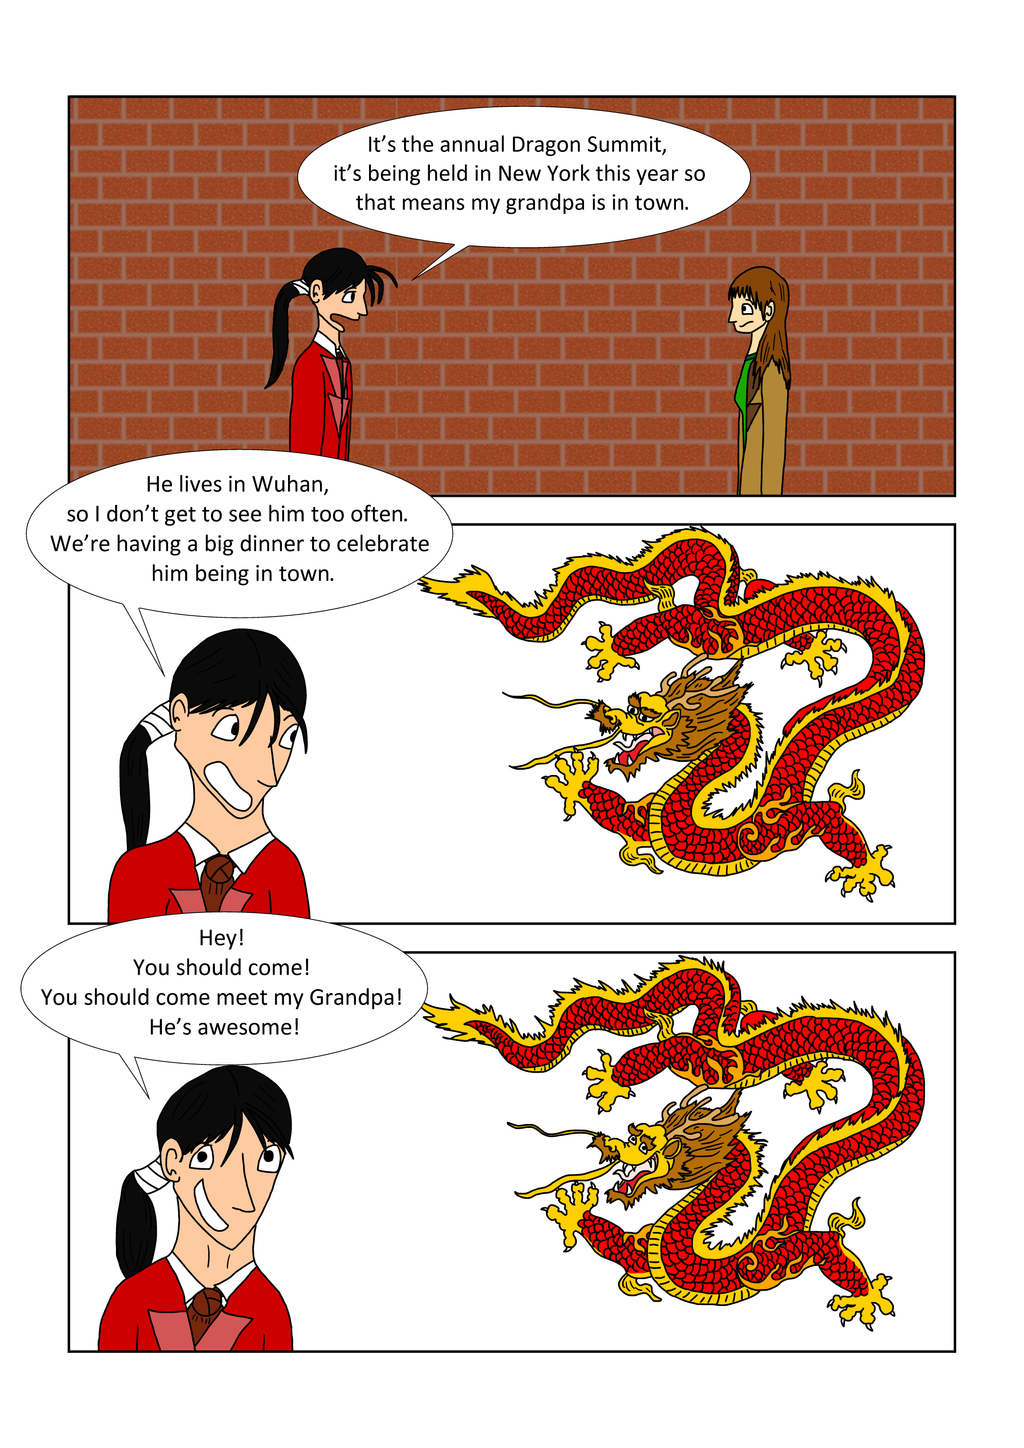 Chinese dragons increase in awesome the longer they live.